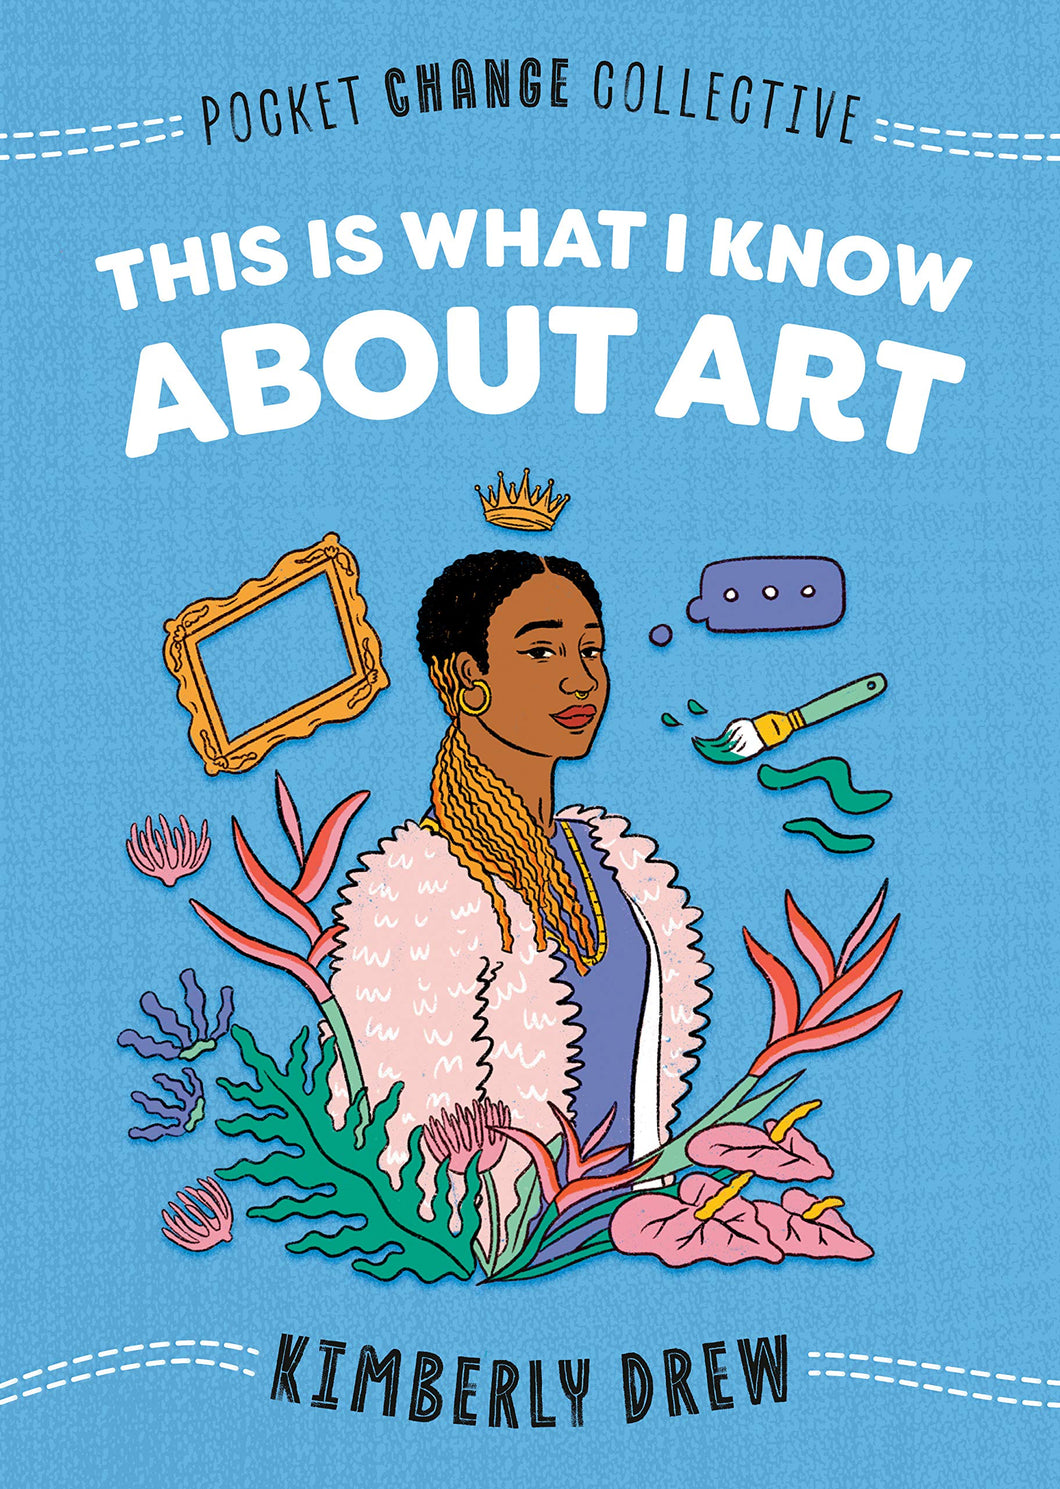 This Is What I Know About Art (Pocket Change Collective) by Kimberly Drew